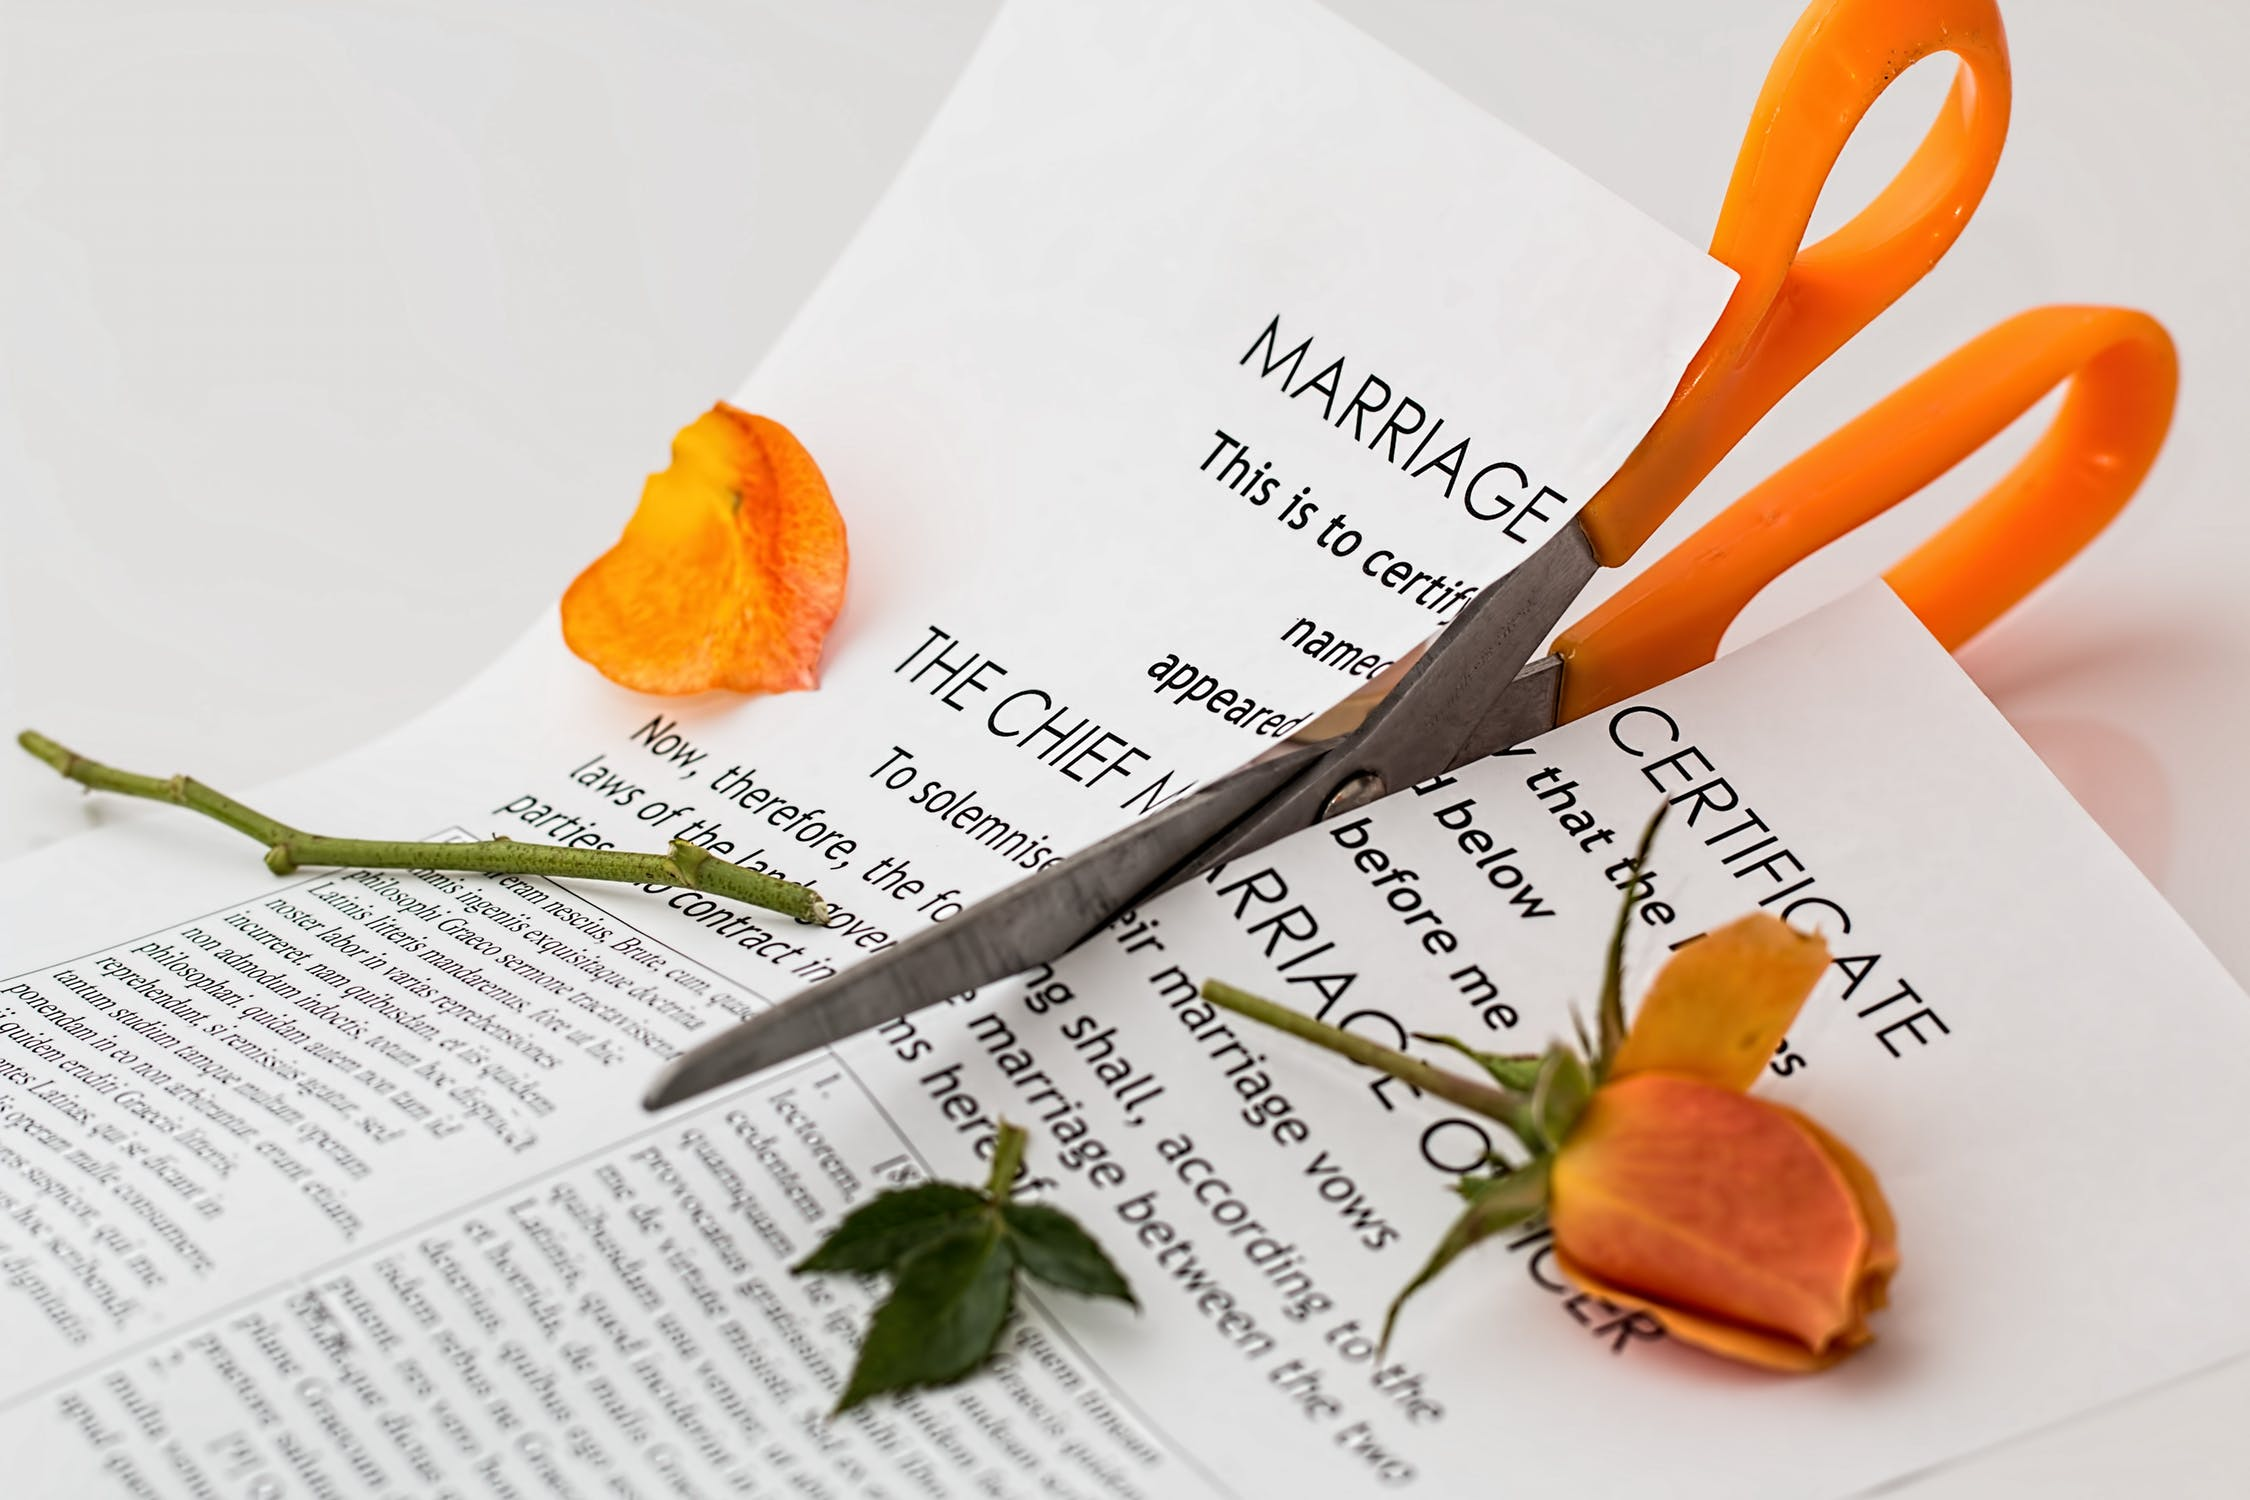 divorce scissors cutting paperwork